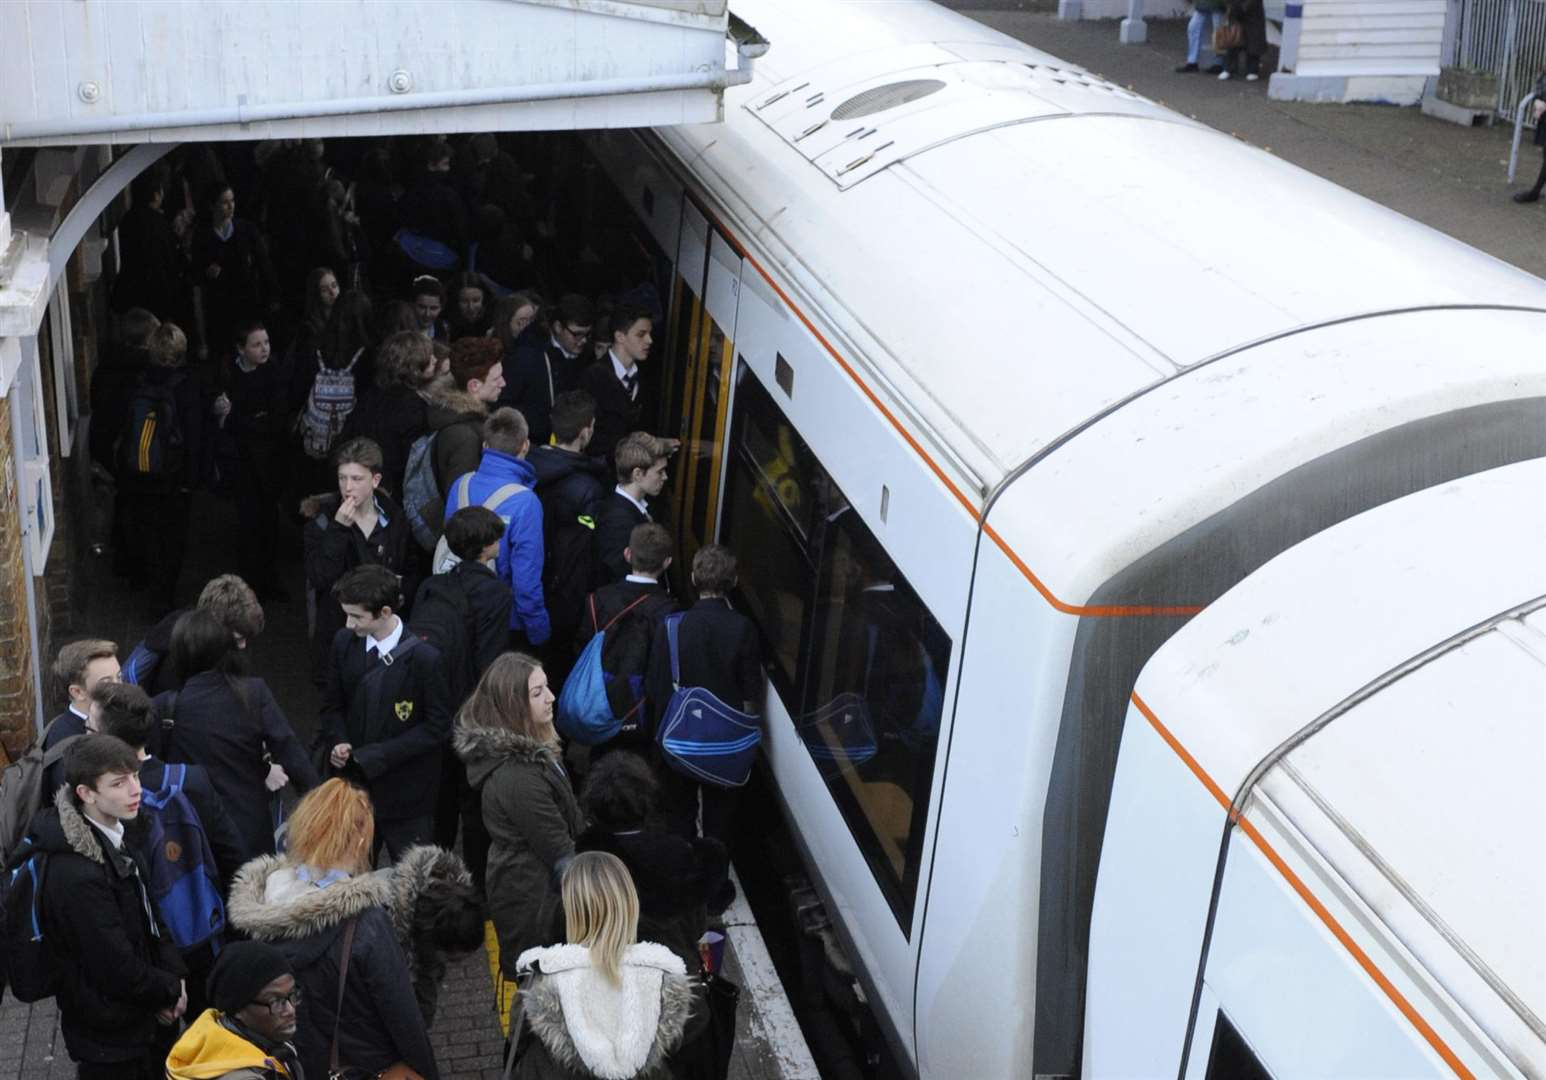 Rail travellers will face an average 3.1% increase in fares next year